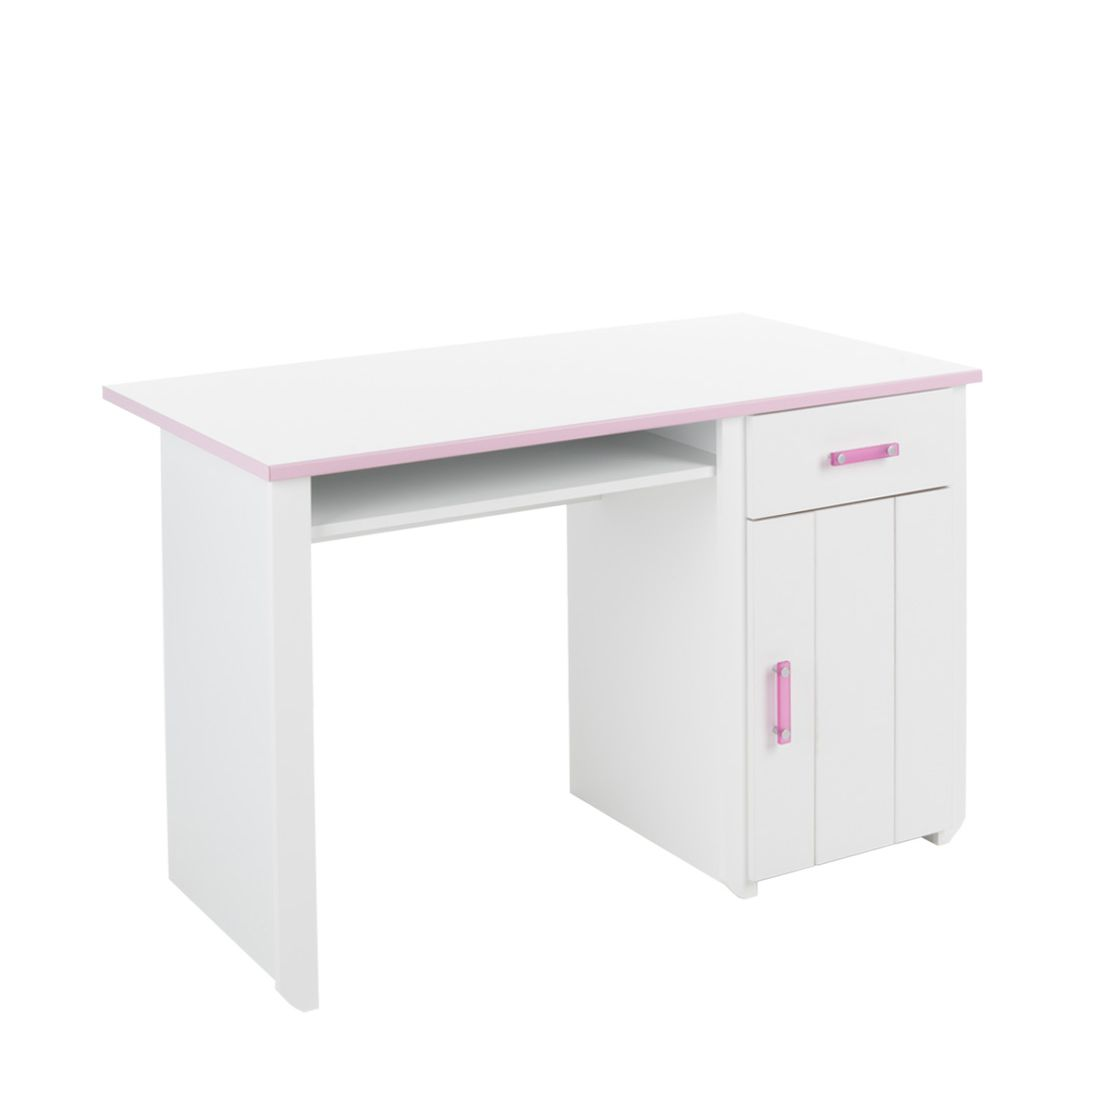 Bureau Biotiful - wit-roze, Parisot Meubles